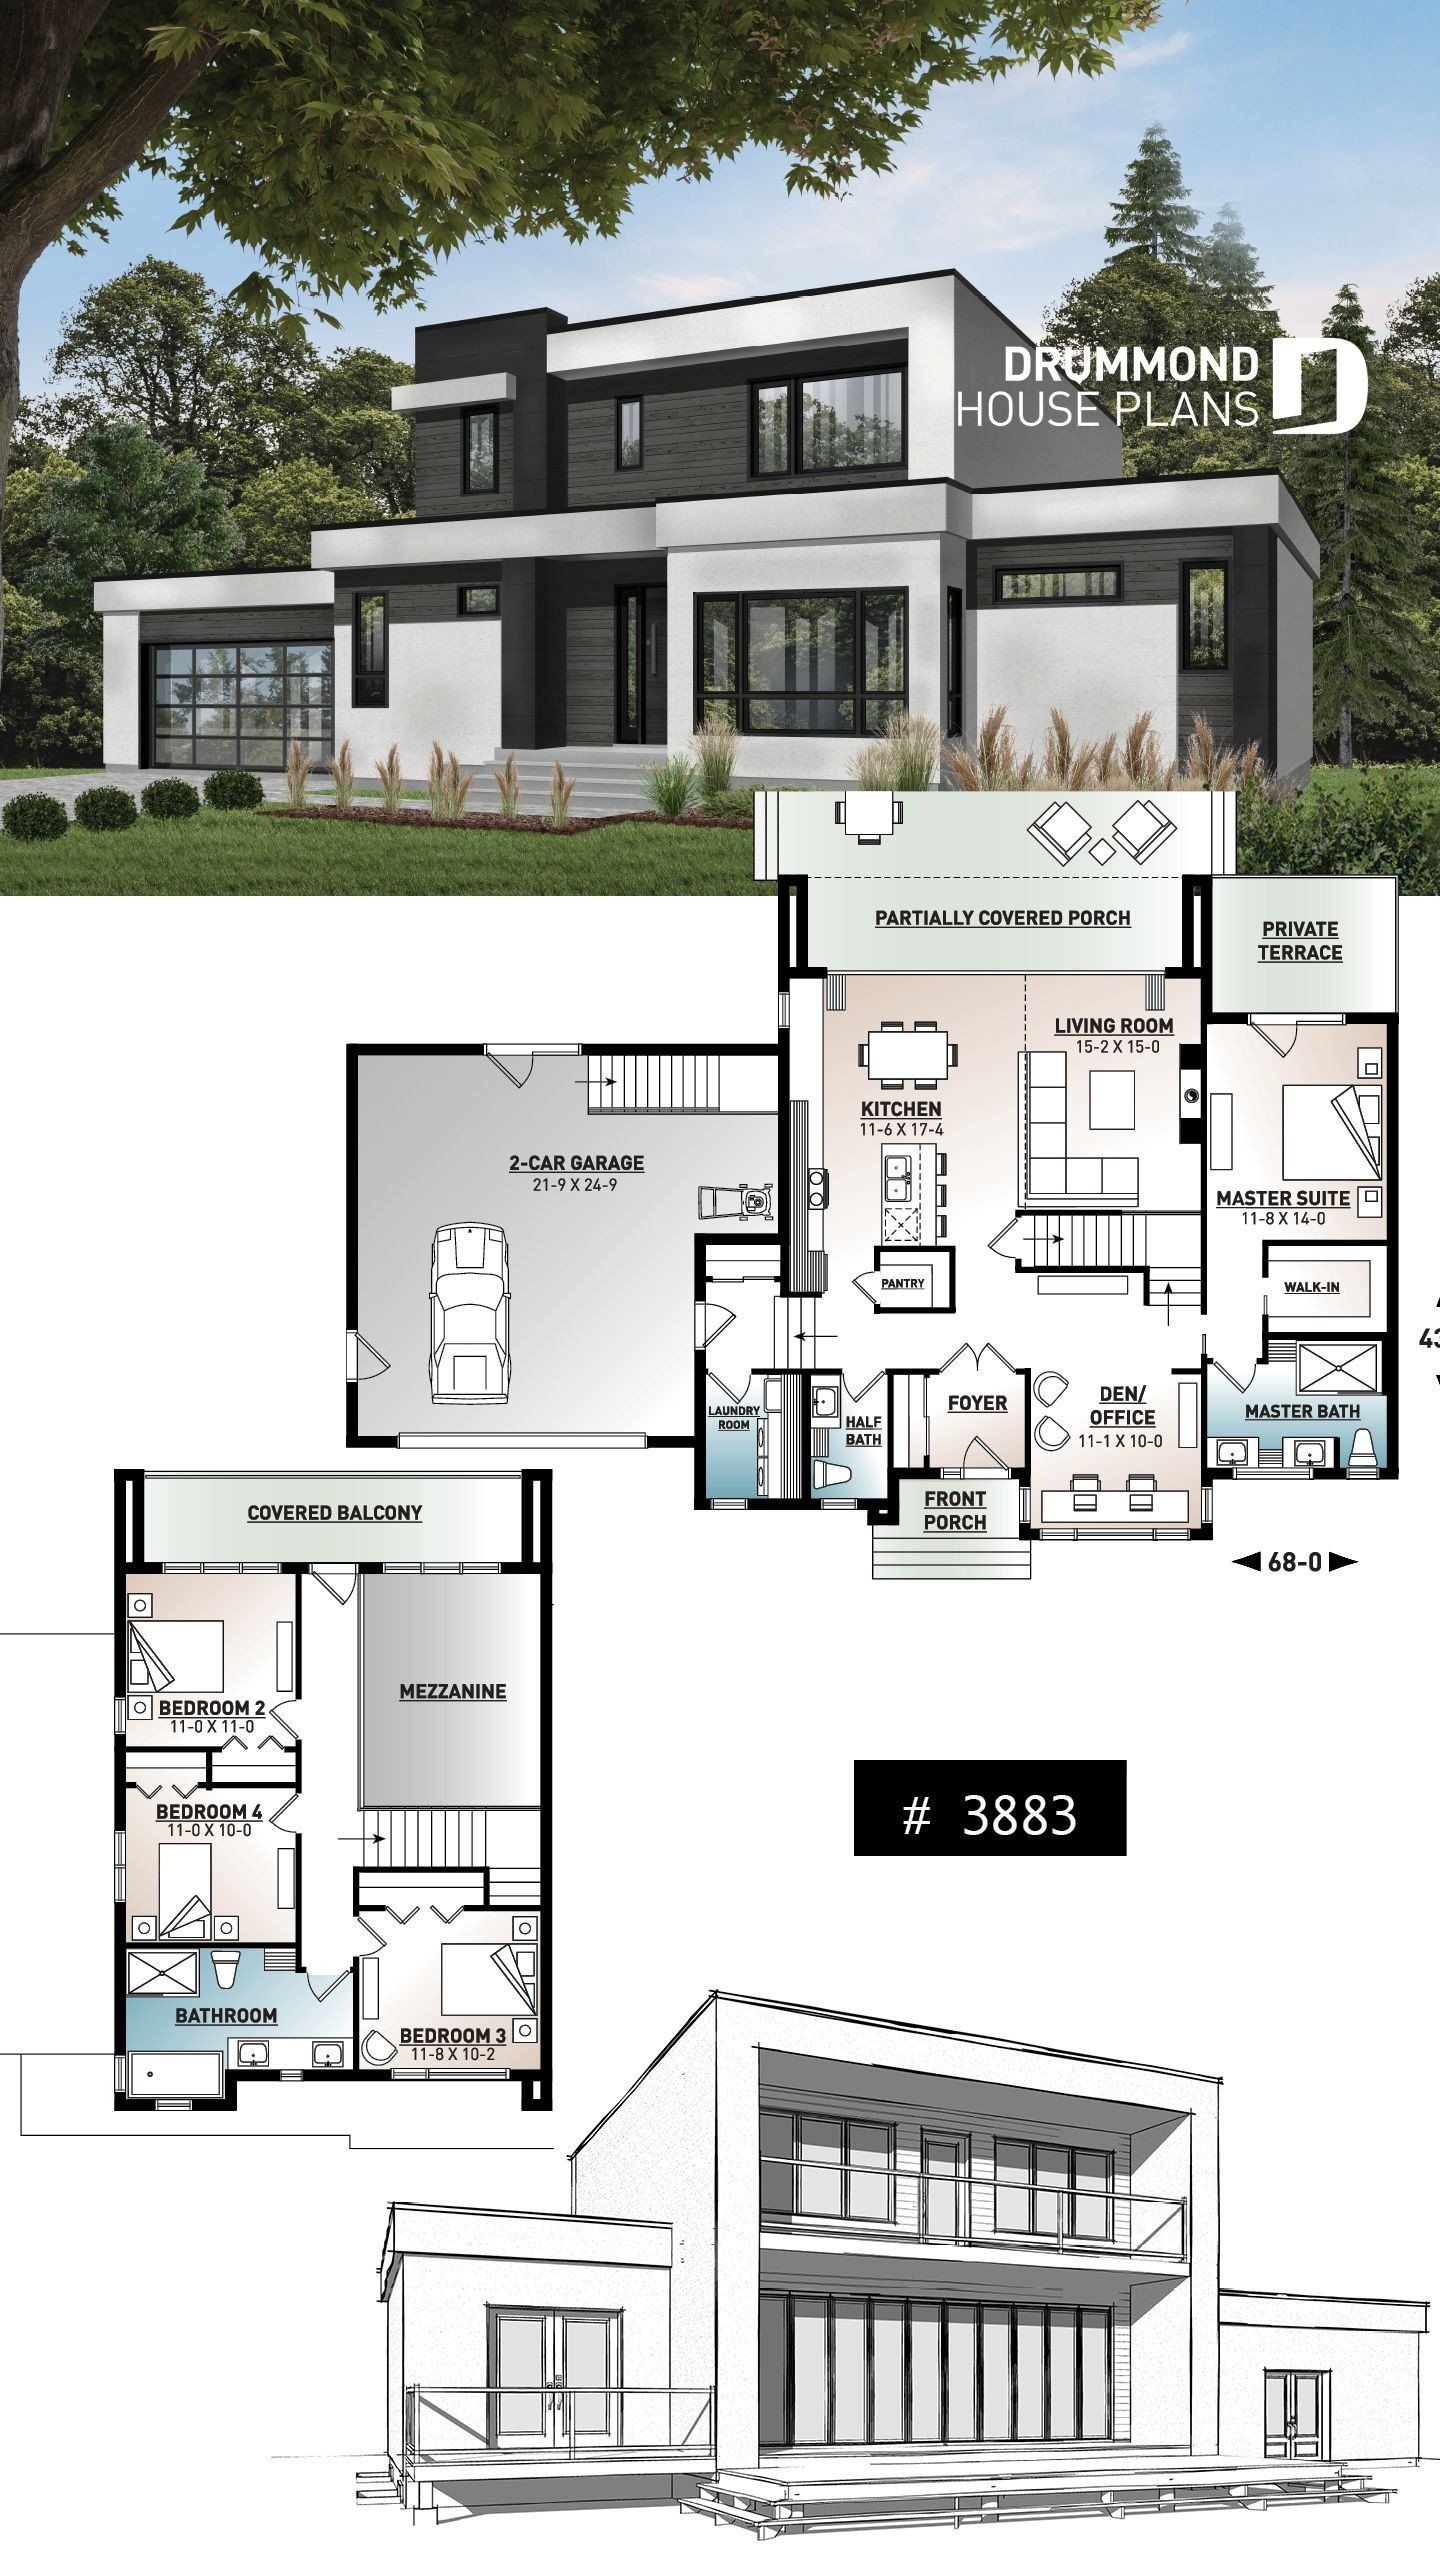 4 Bedroom Bungalow Architectural Design Beautiful Modern Cubic House Plan Master Su Modern House Floor Plans Contemporary House Plans Modern Architecture House